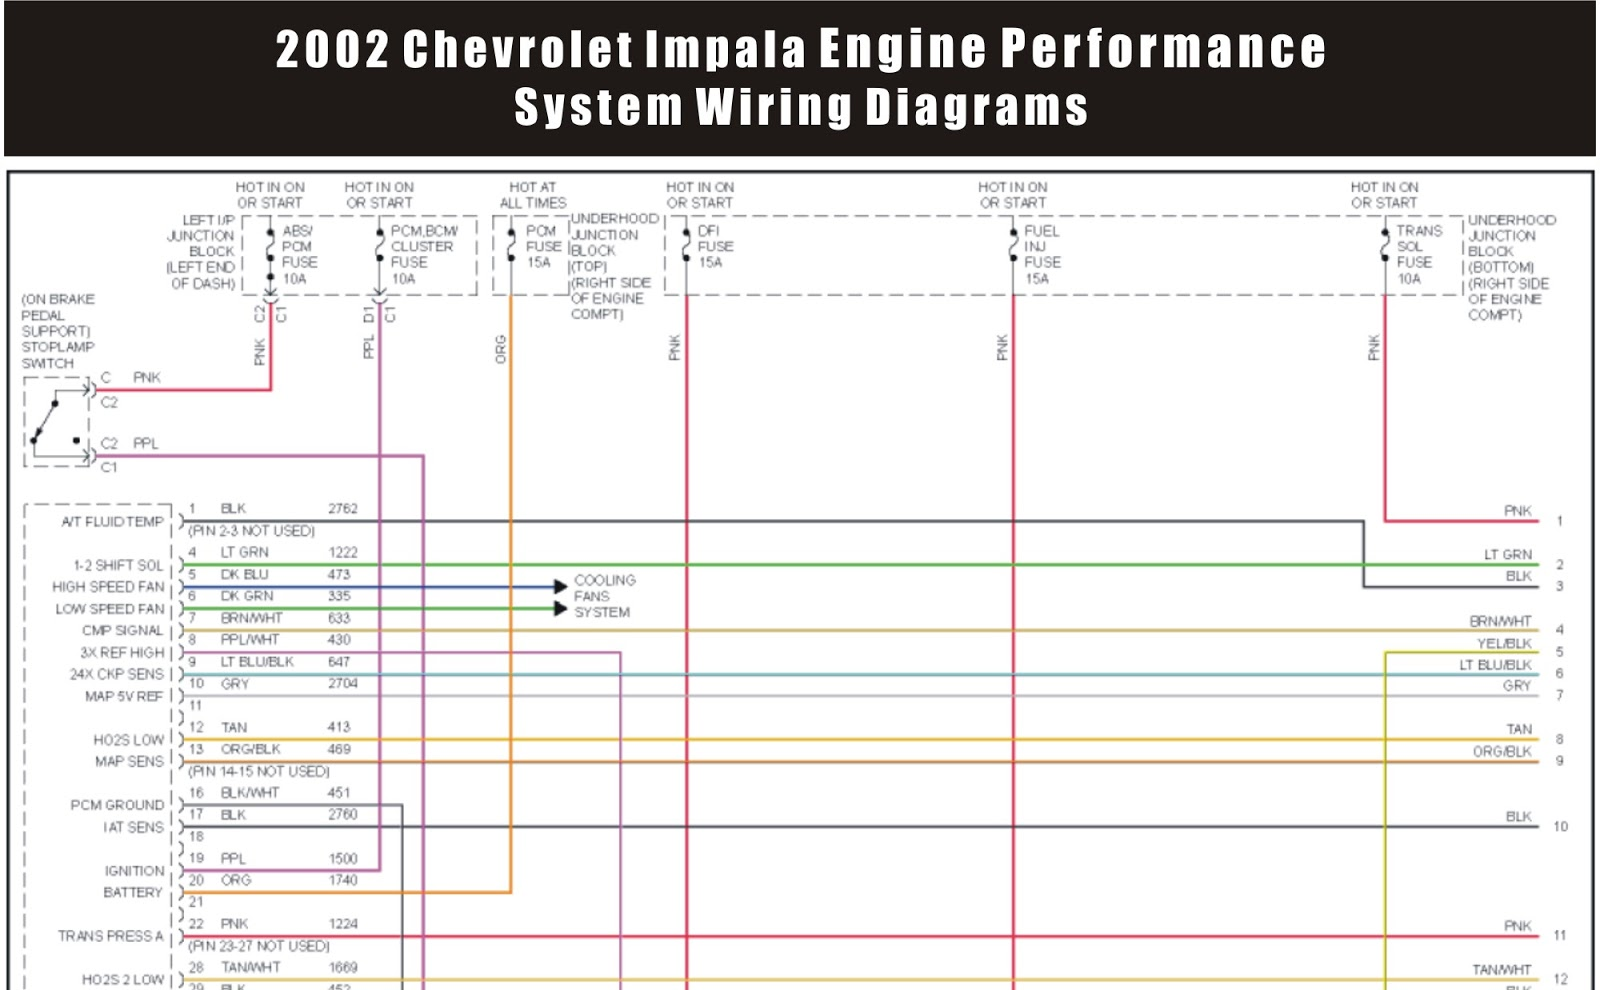 2002 Chevrolet Impala Engine Performance System Wiring Diagrams